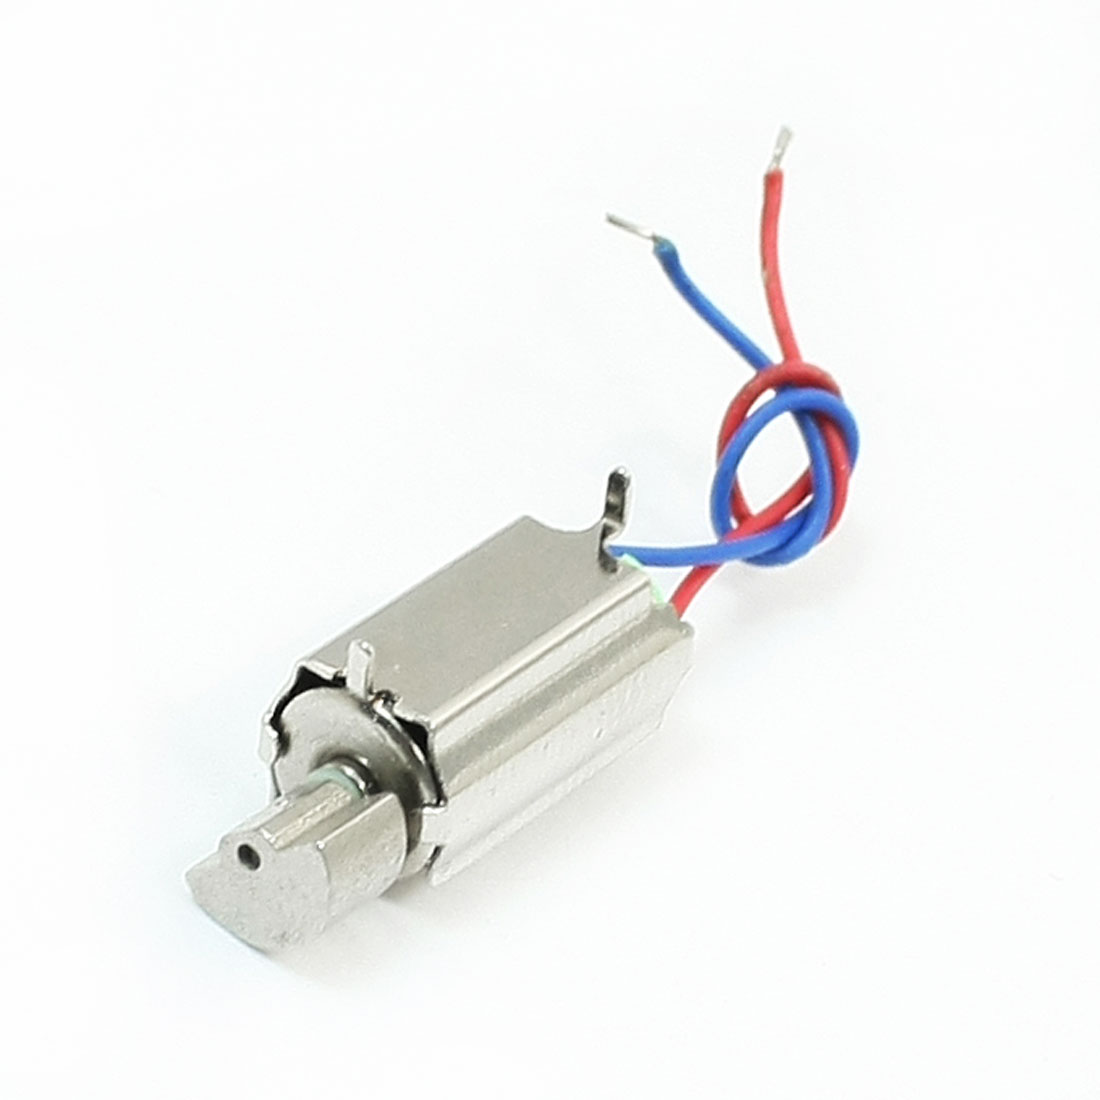 10000RPM-Speed-DC3V-2-Pins-6mmx12mm-Micro-Coreless-Vibration-Motor